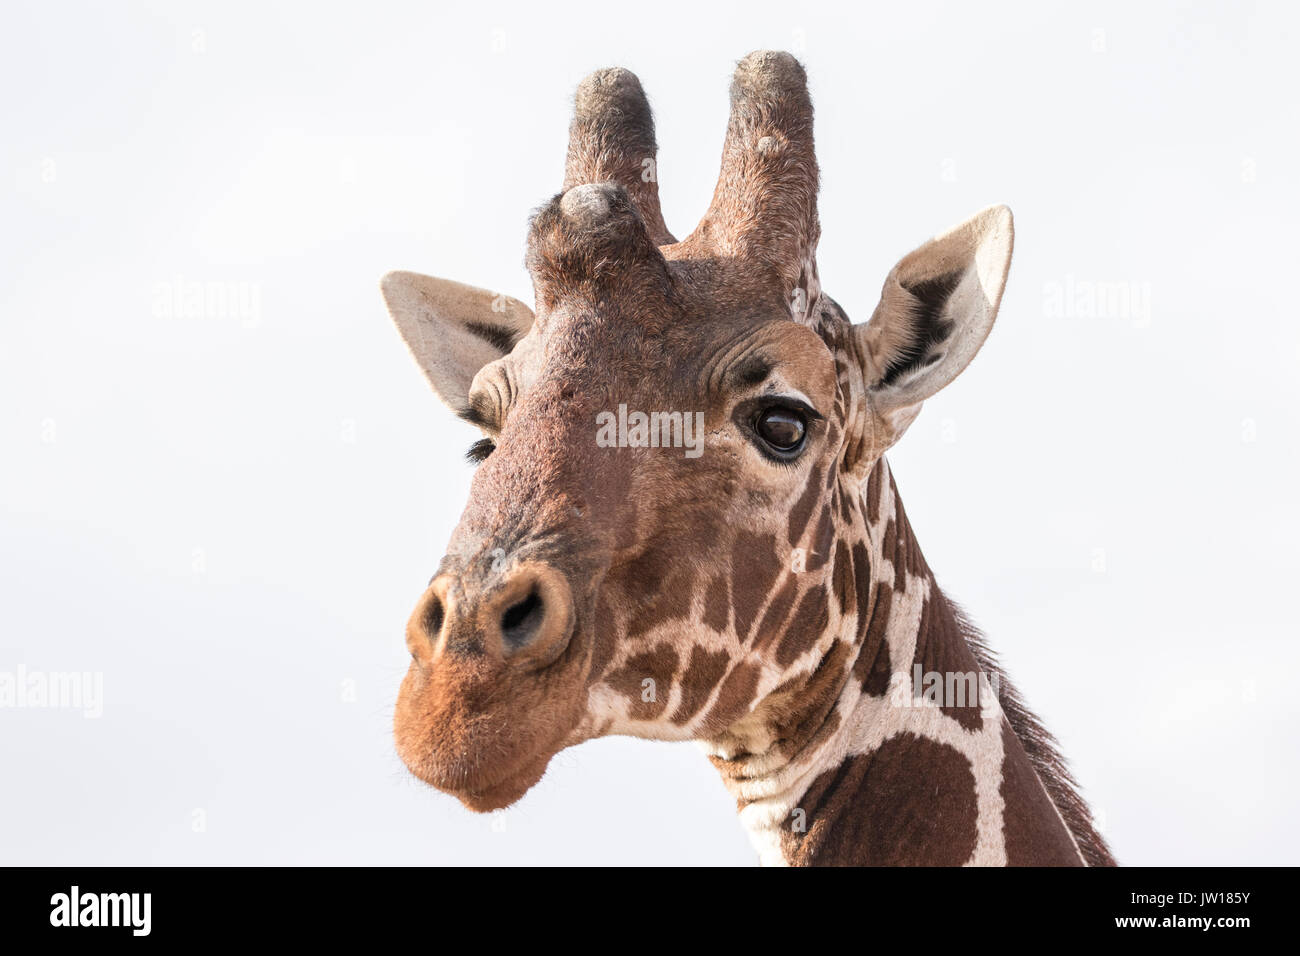 Reticulated Giraffe (Giraffa Camelopardalis reticulata) getting curious about our car passing by. When enlarged, Stock Photo